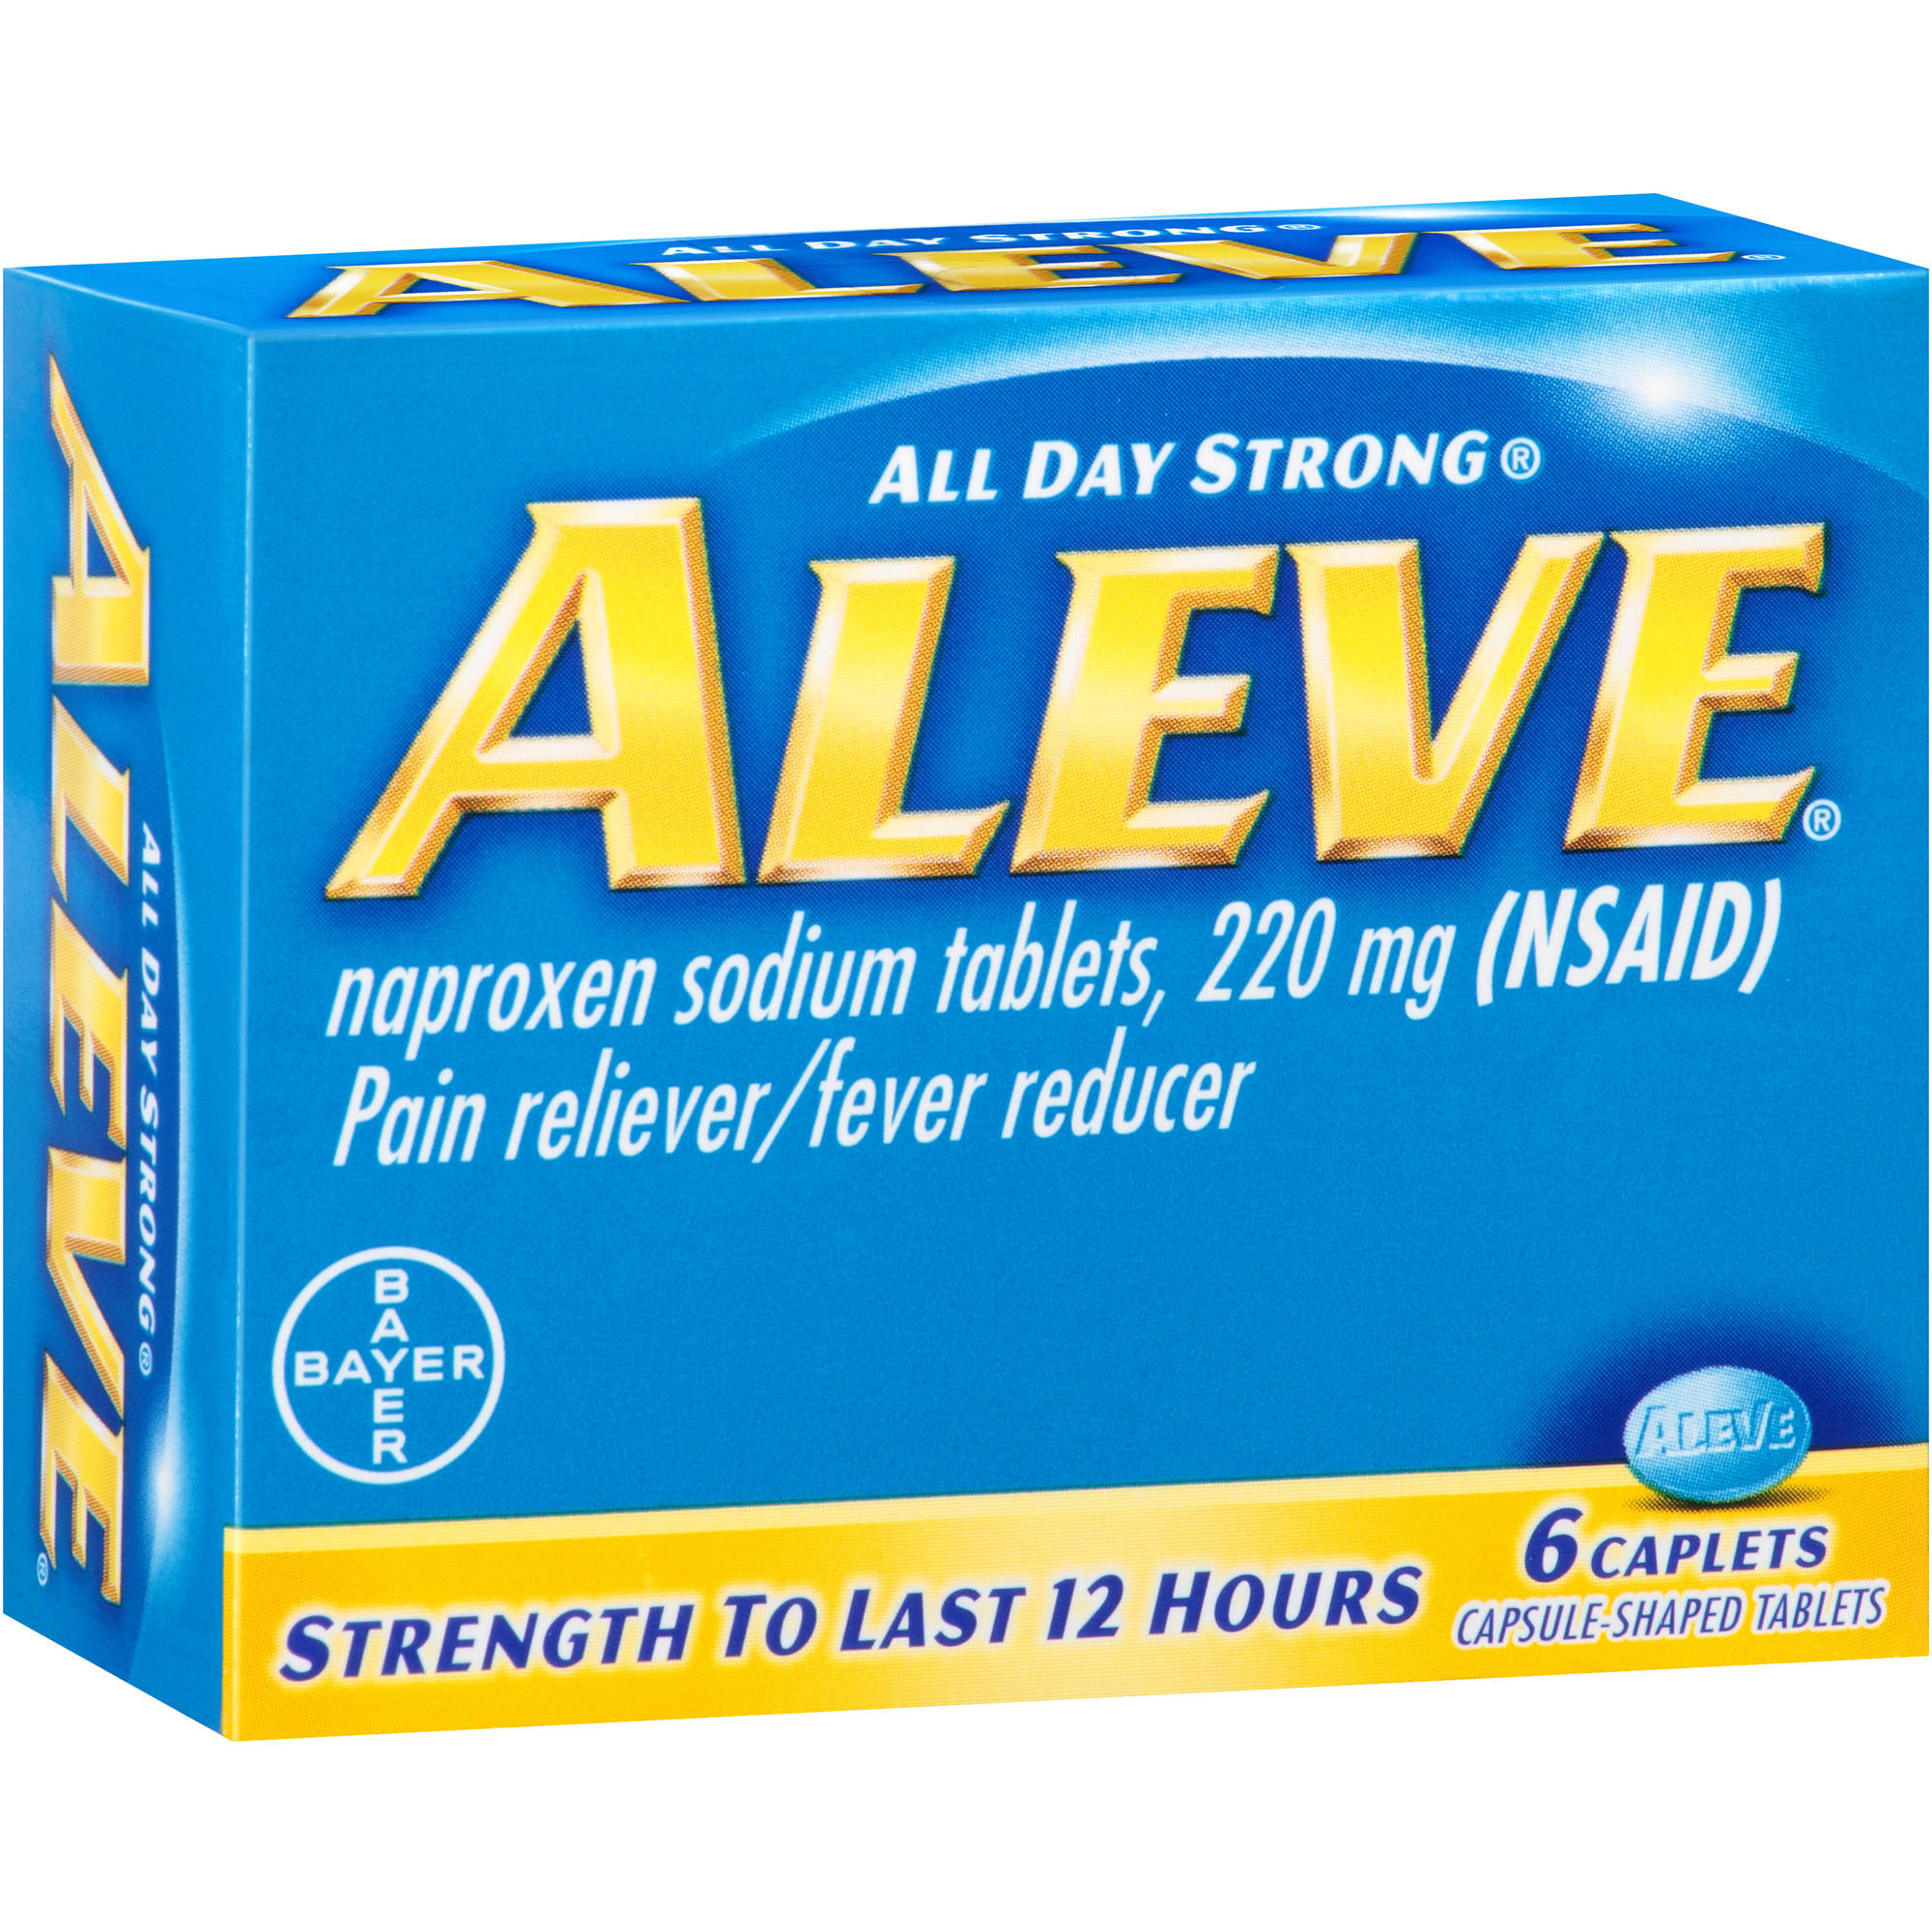 Aleve Naproxen Pain Reliever/Fever Reducer Caplets, 220mg, 6 count